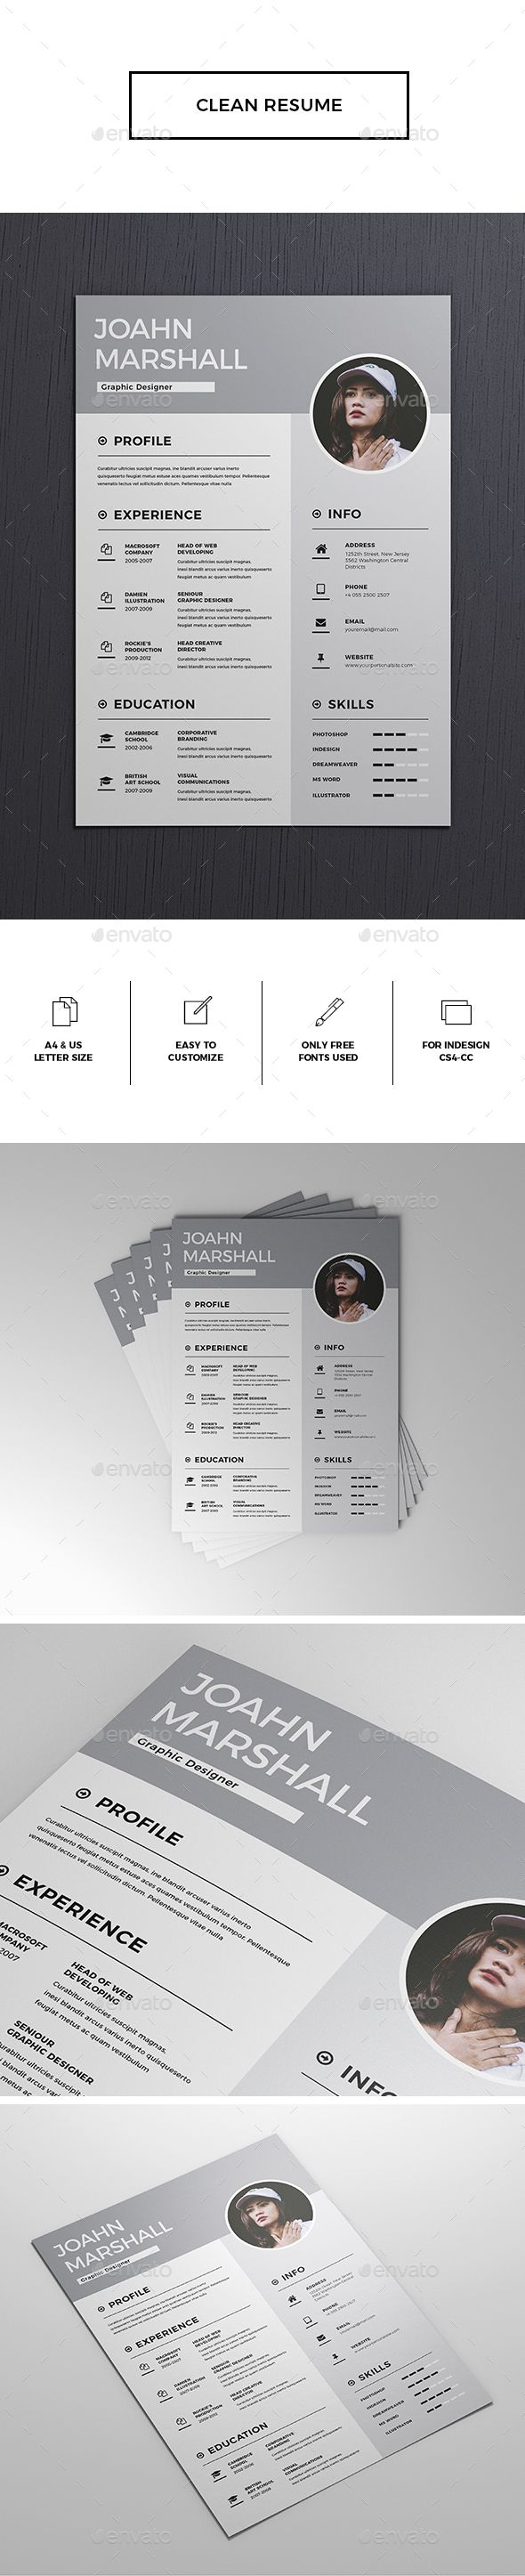 Clean ResumeCv  Resume Cv Creative Resume Templates And Icon Font